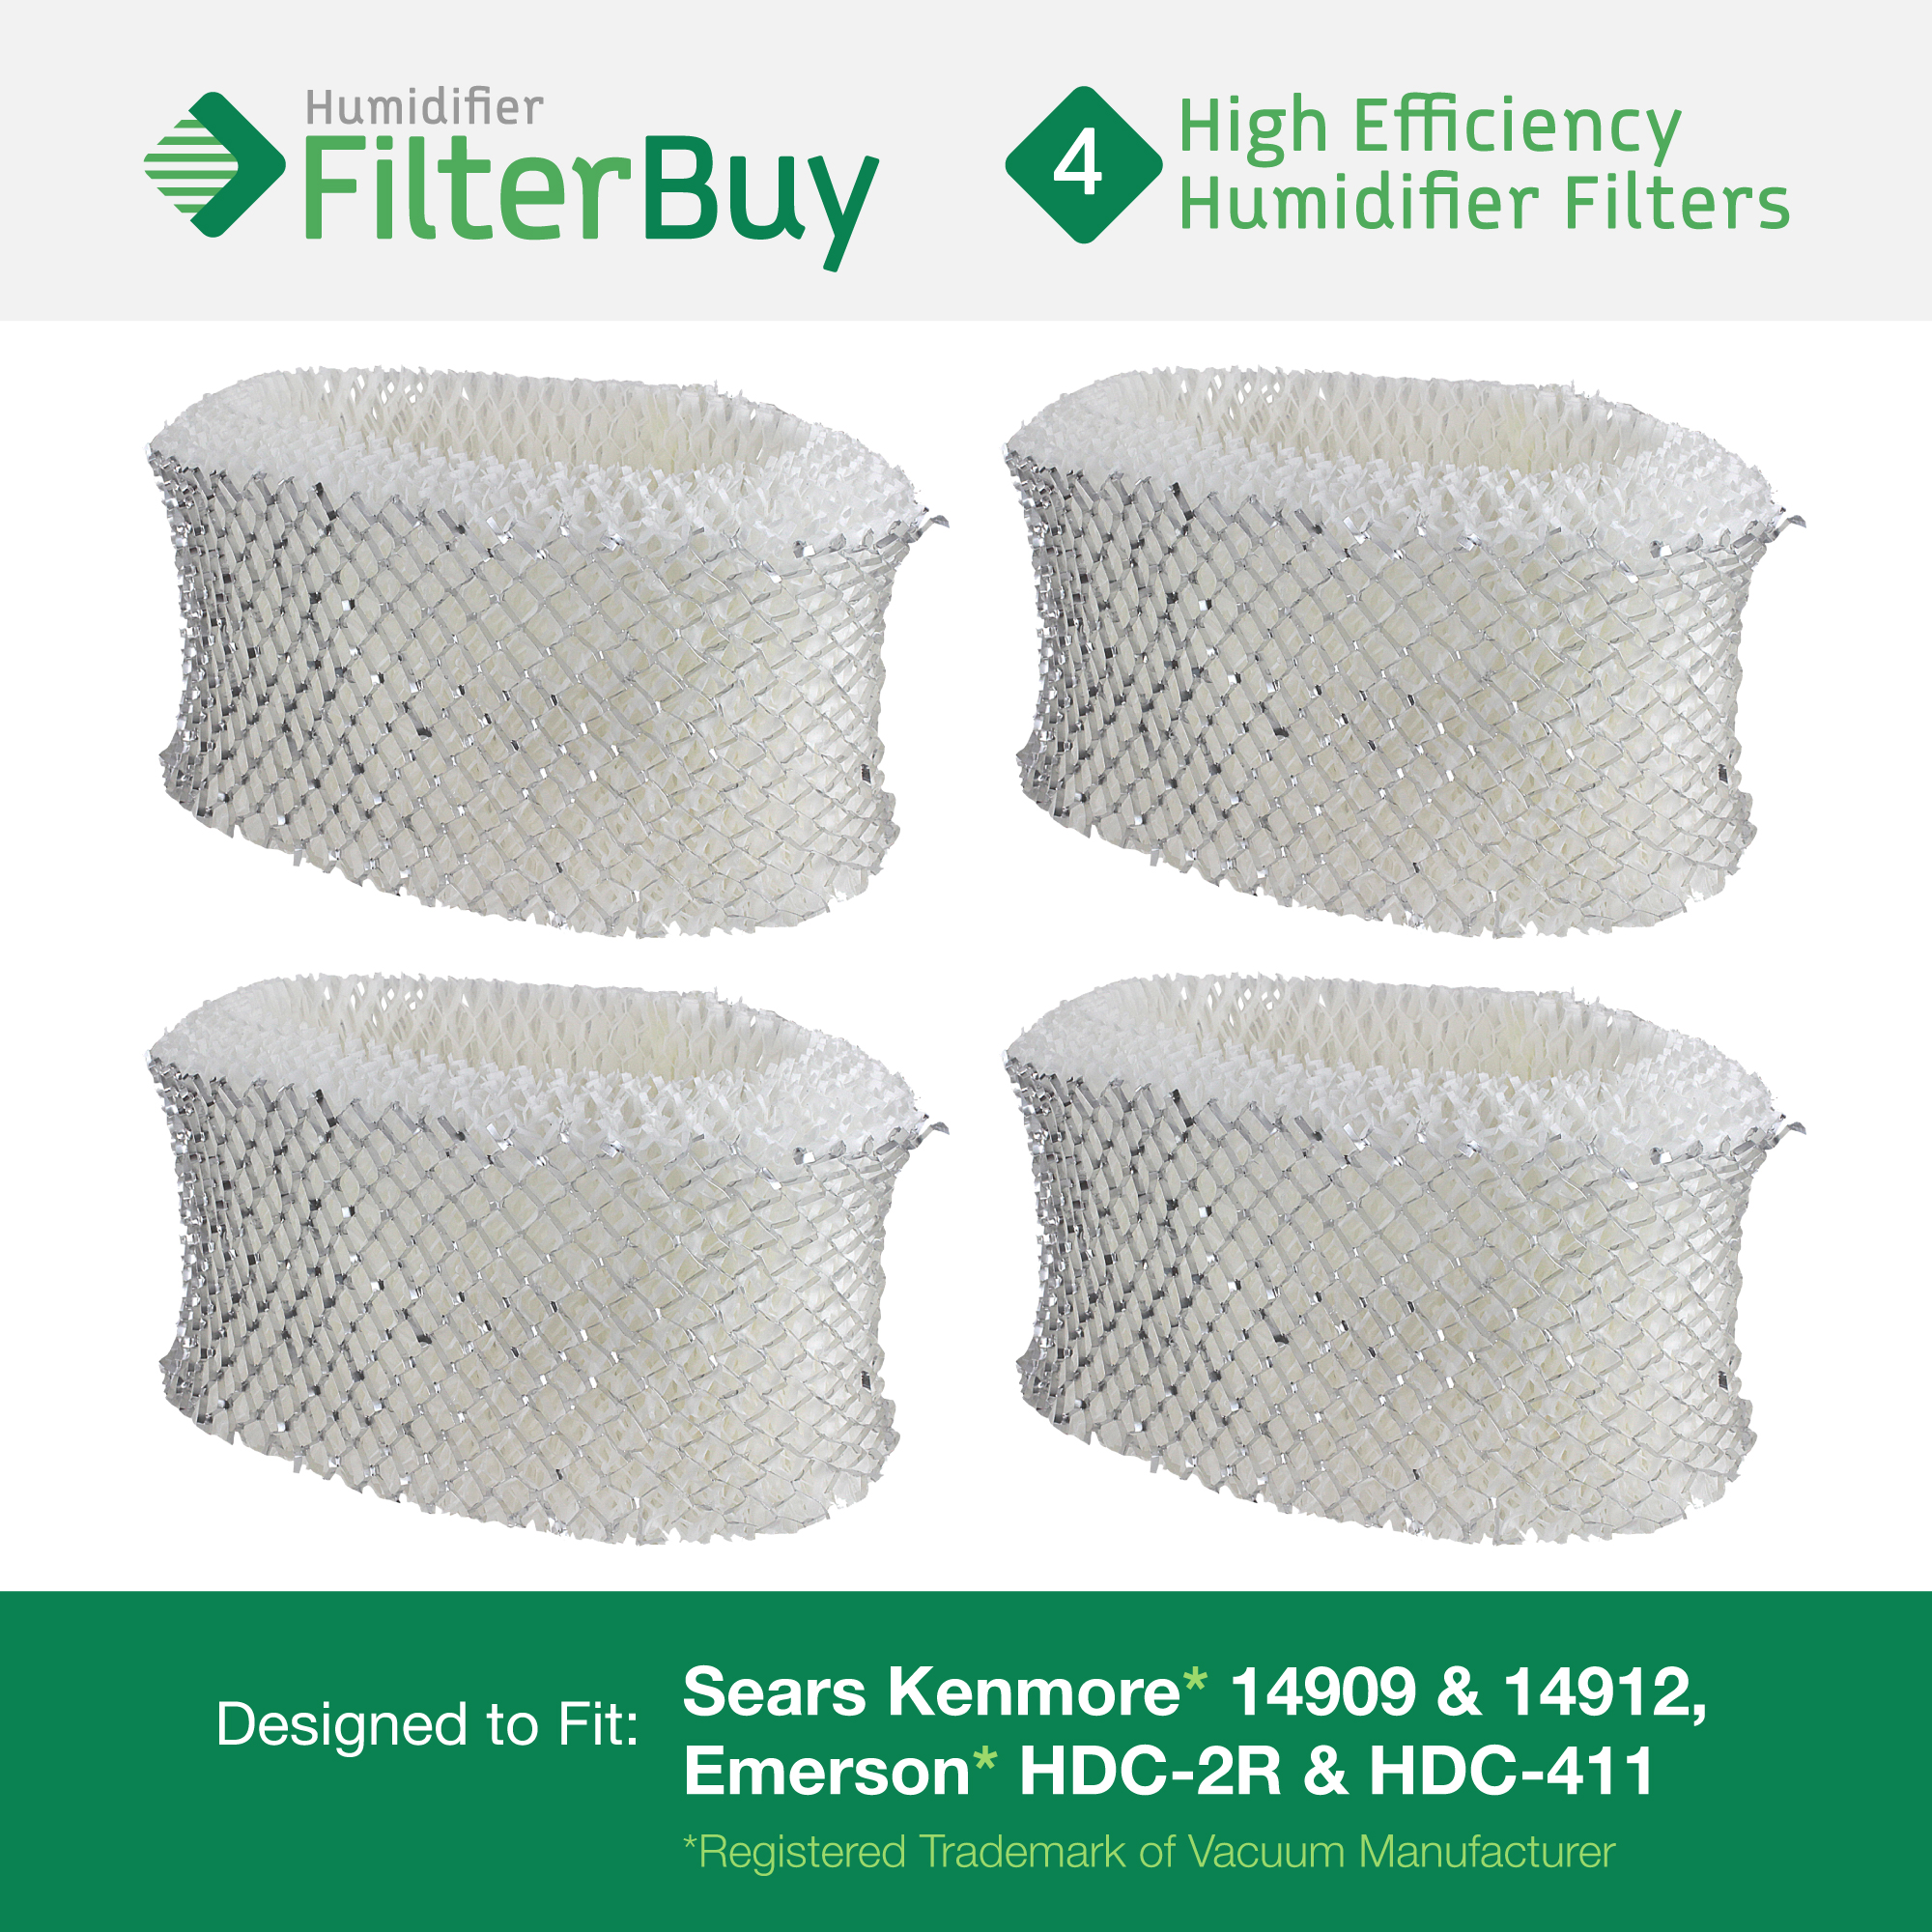 4 - Holmes & Sunbeam Part # HWF62, Hamilton Beach Part # 05910 Humidifier Replacement Filters. Designed by FilterBuy in the USA.